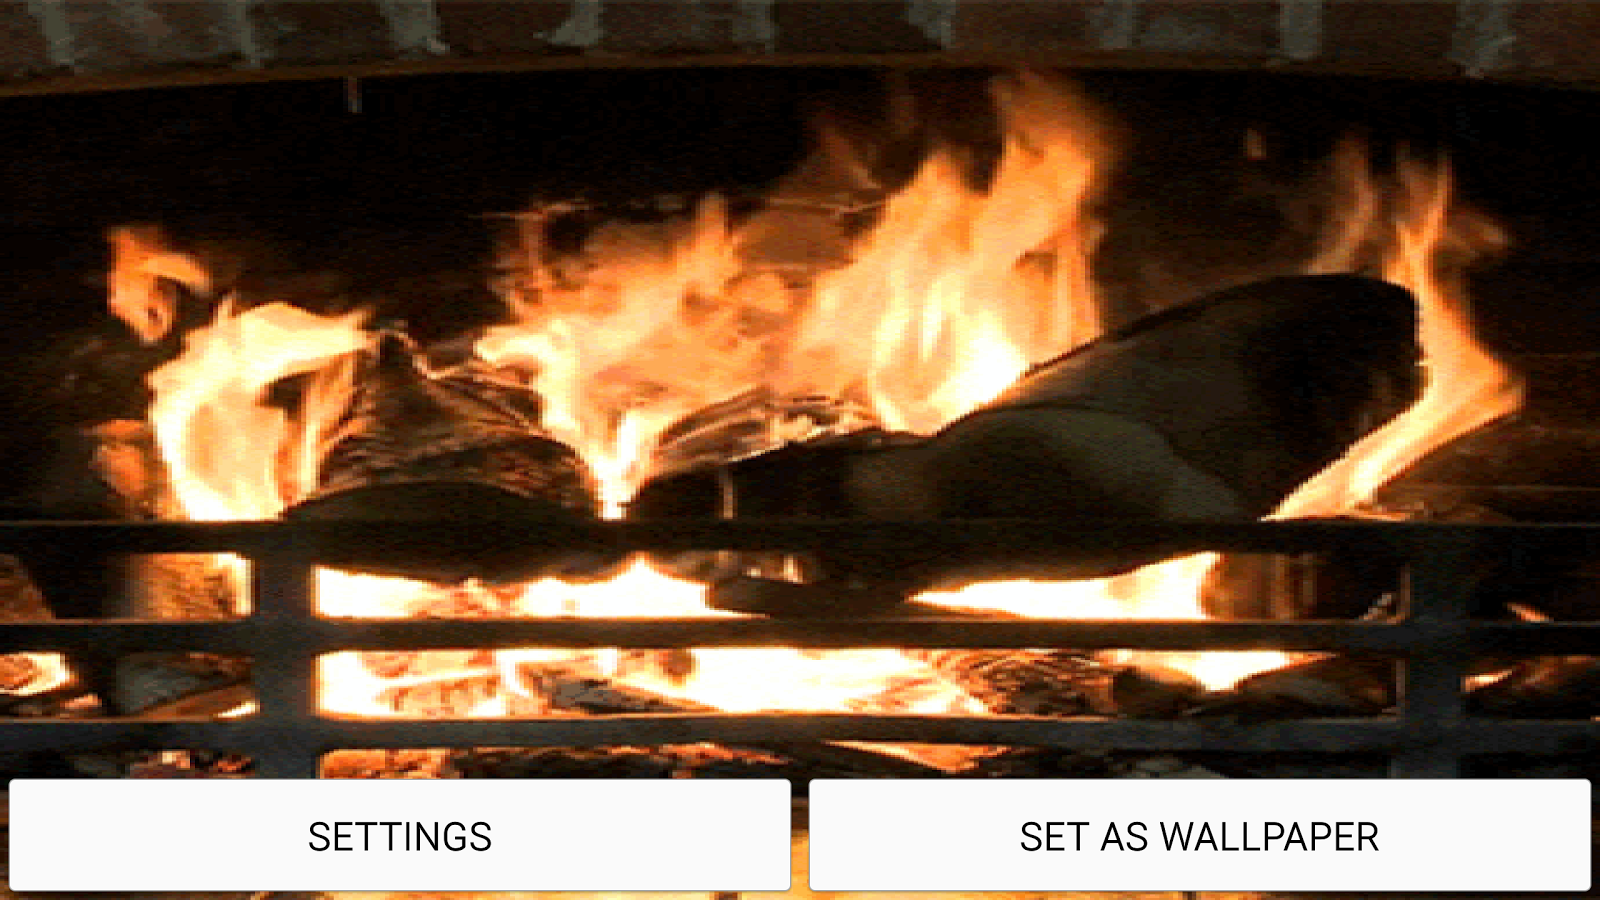 Fireplace Sound Live Wallpaper App Ranking and Store Data